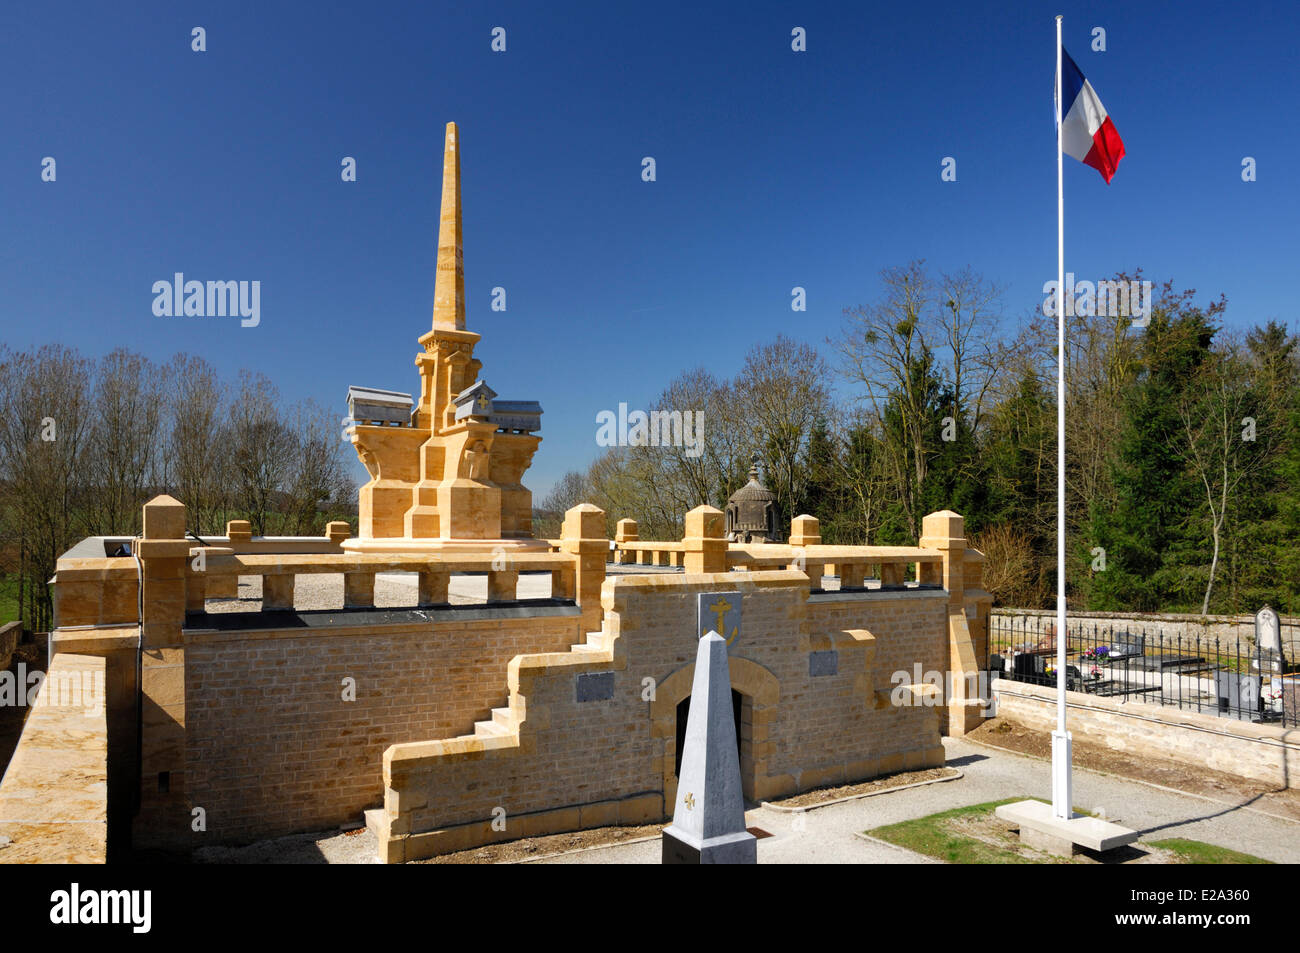 France, Ardennes, Bazeilles, Bazeilles ossuary and crypt containing The Remains of more Than 2000 fallen soldiers - Stock Image